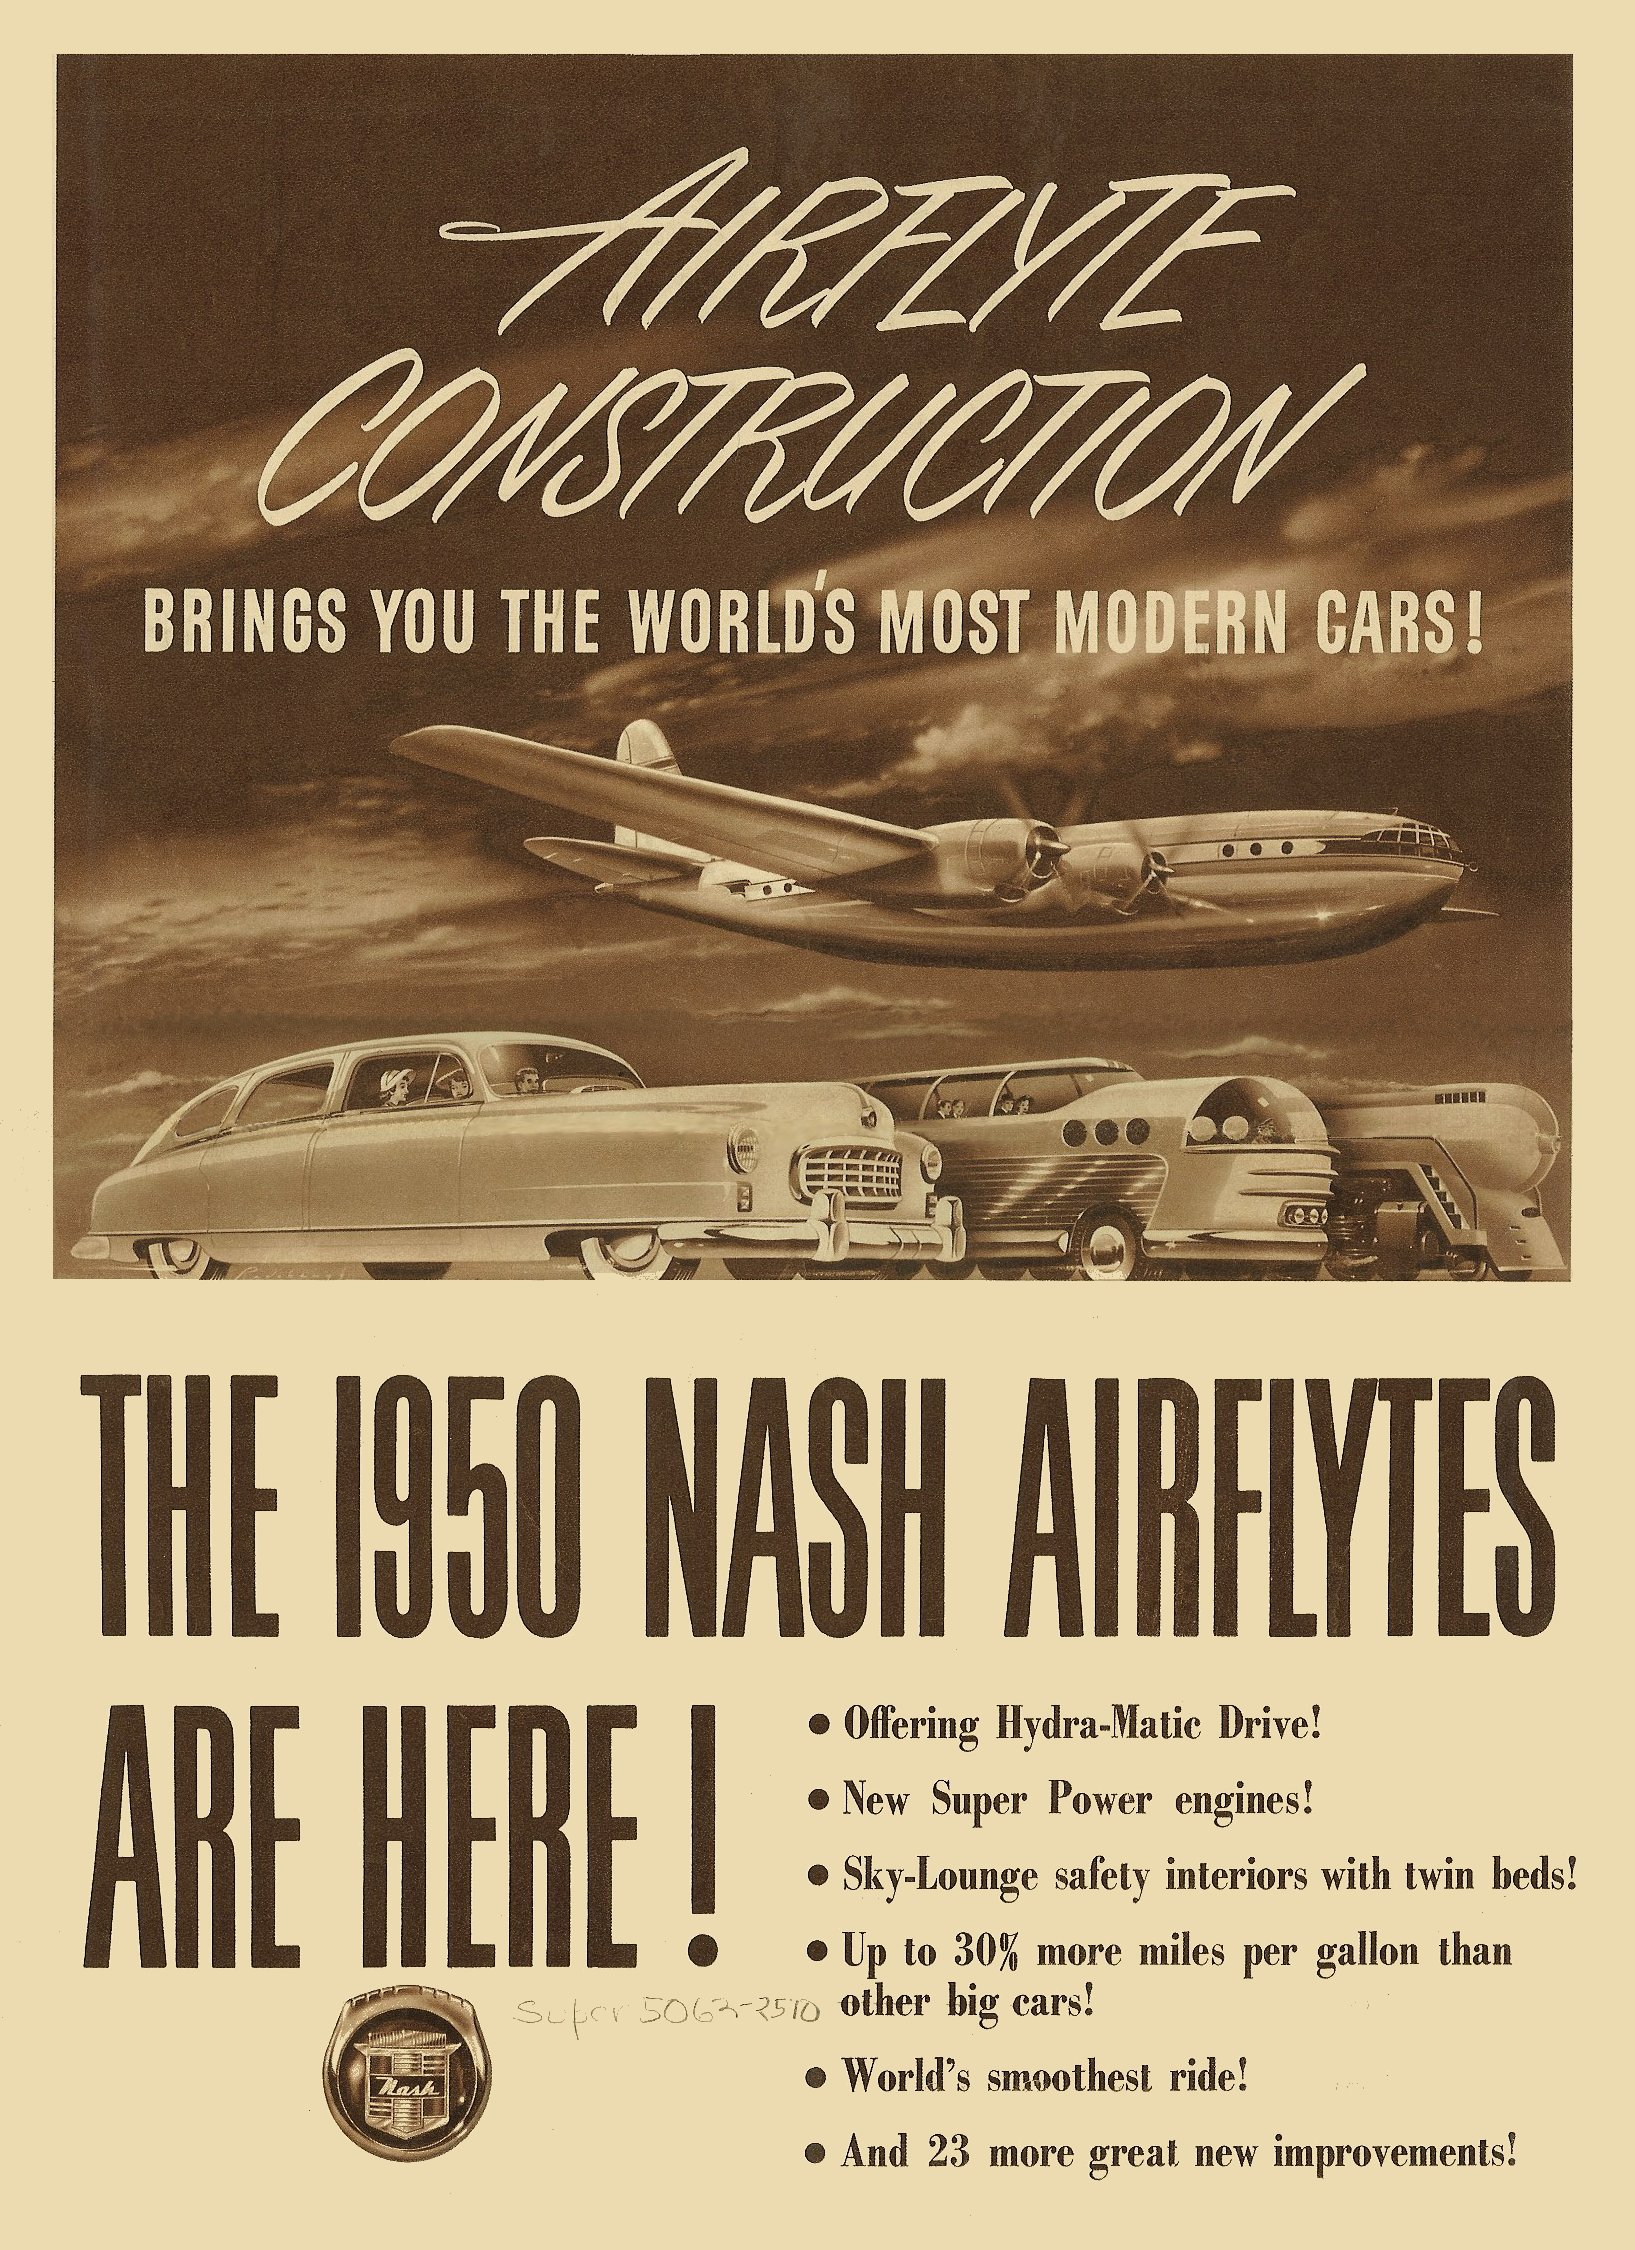 1950 NASH Airflyte Construction Sales Foldout 11″x14″ folded Form No. NSP 401B-2000M-8-49 Front page